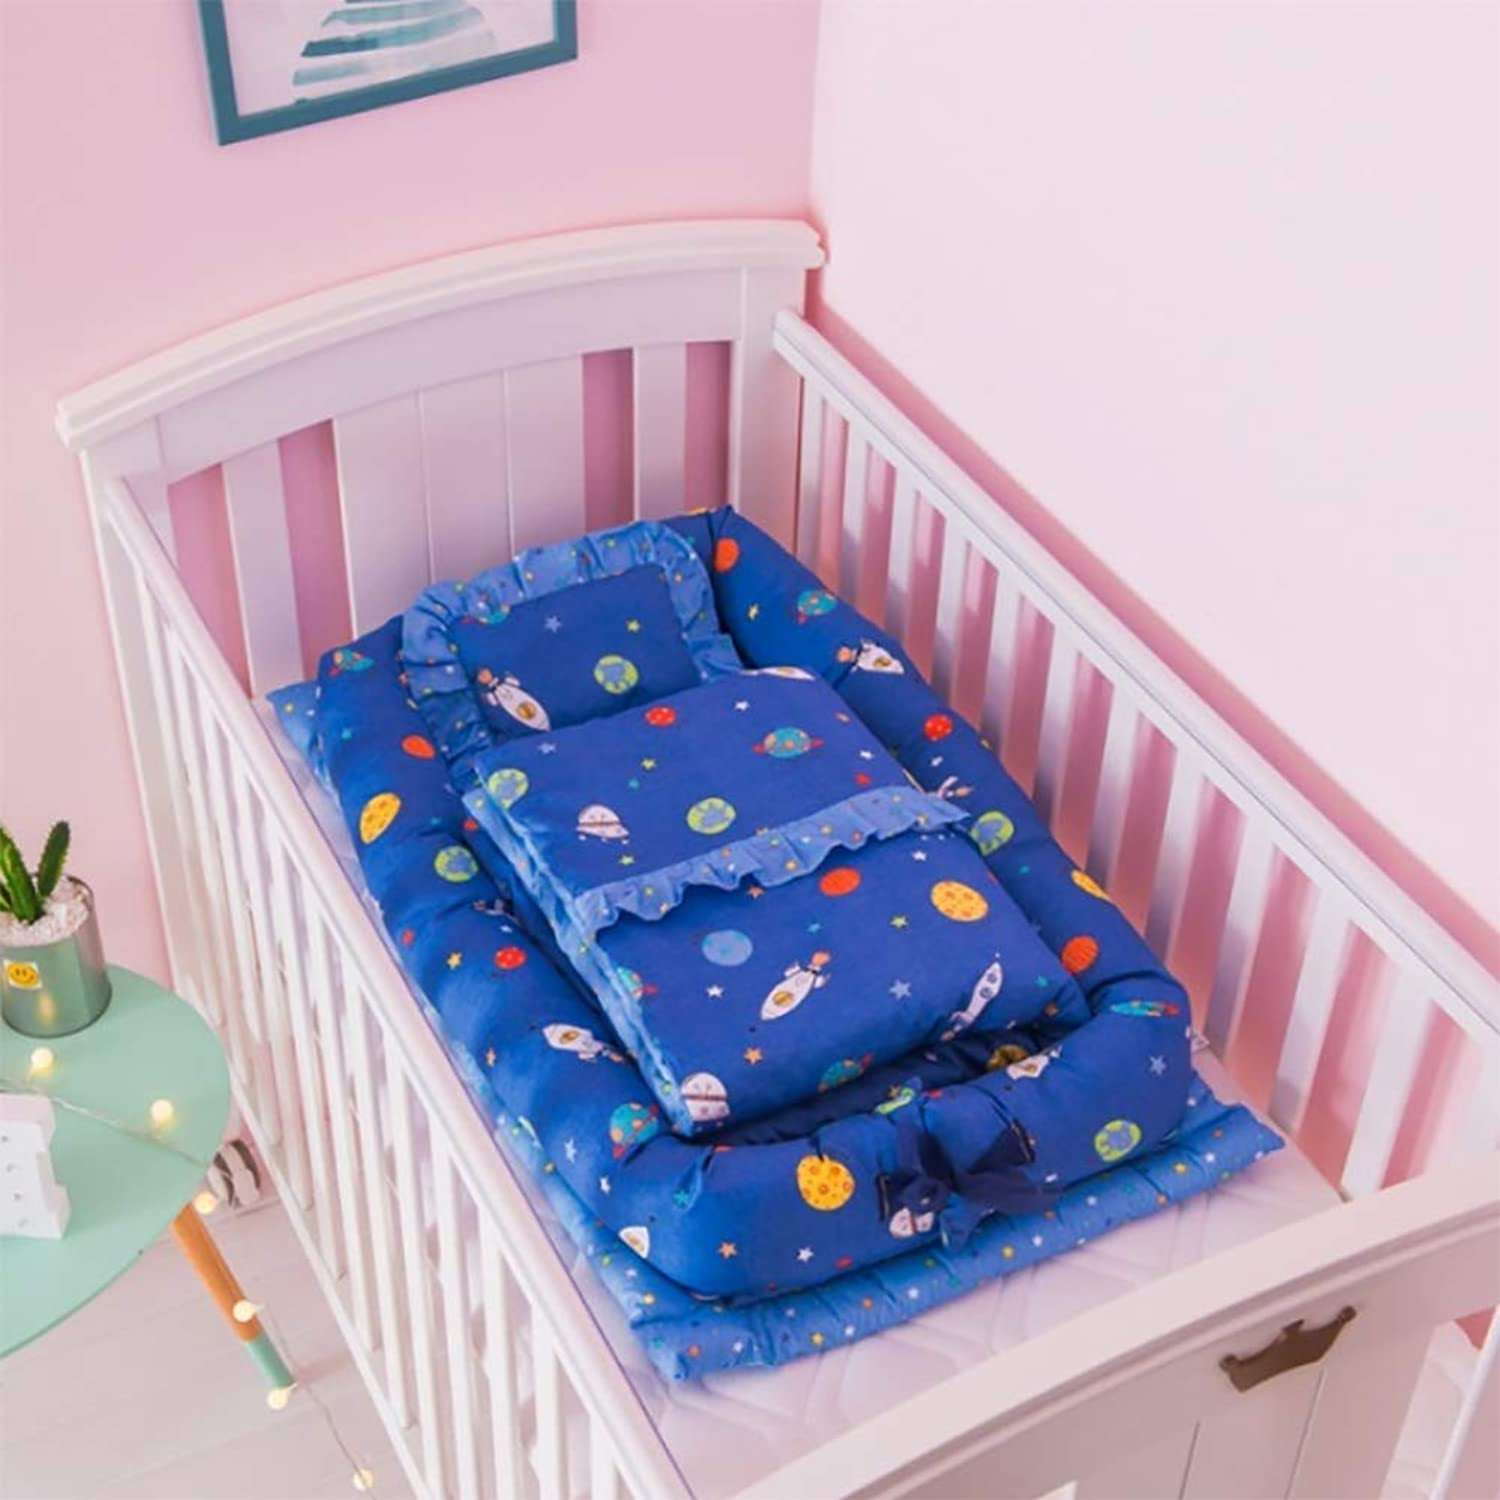 Crib Cotton Portable Washable Baby Isolation Bed Newborn Bionic Bed Baby for 0-24 Months (with Quilt),H